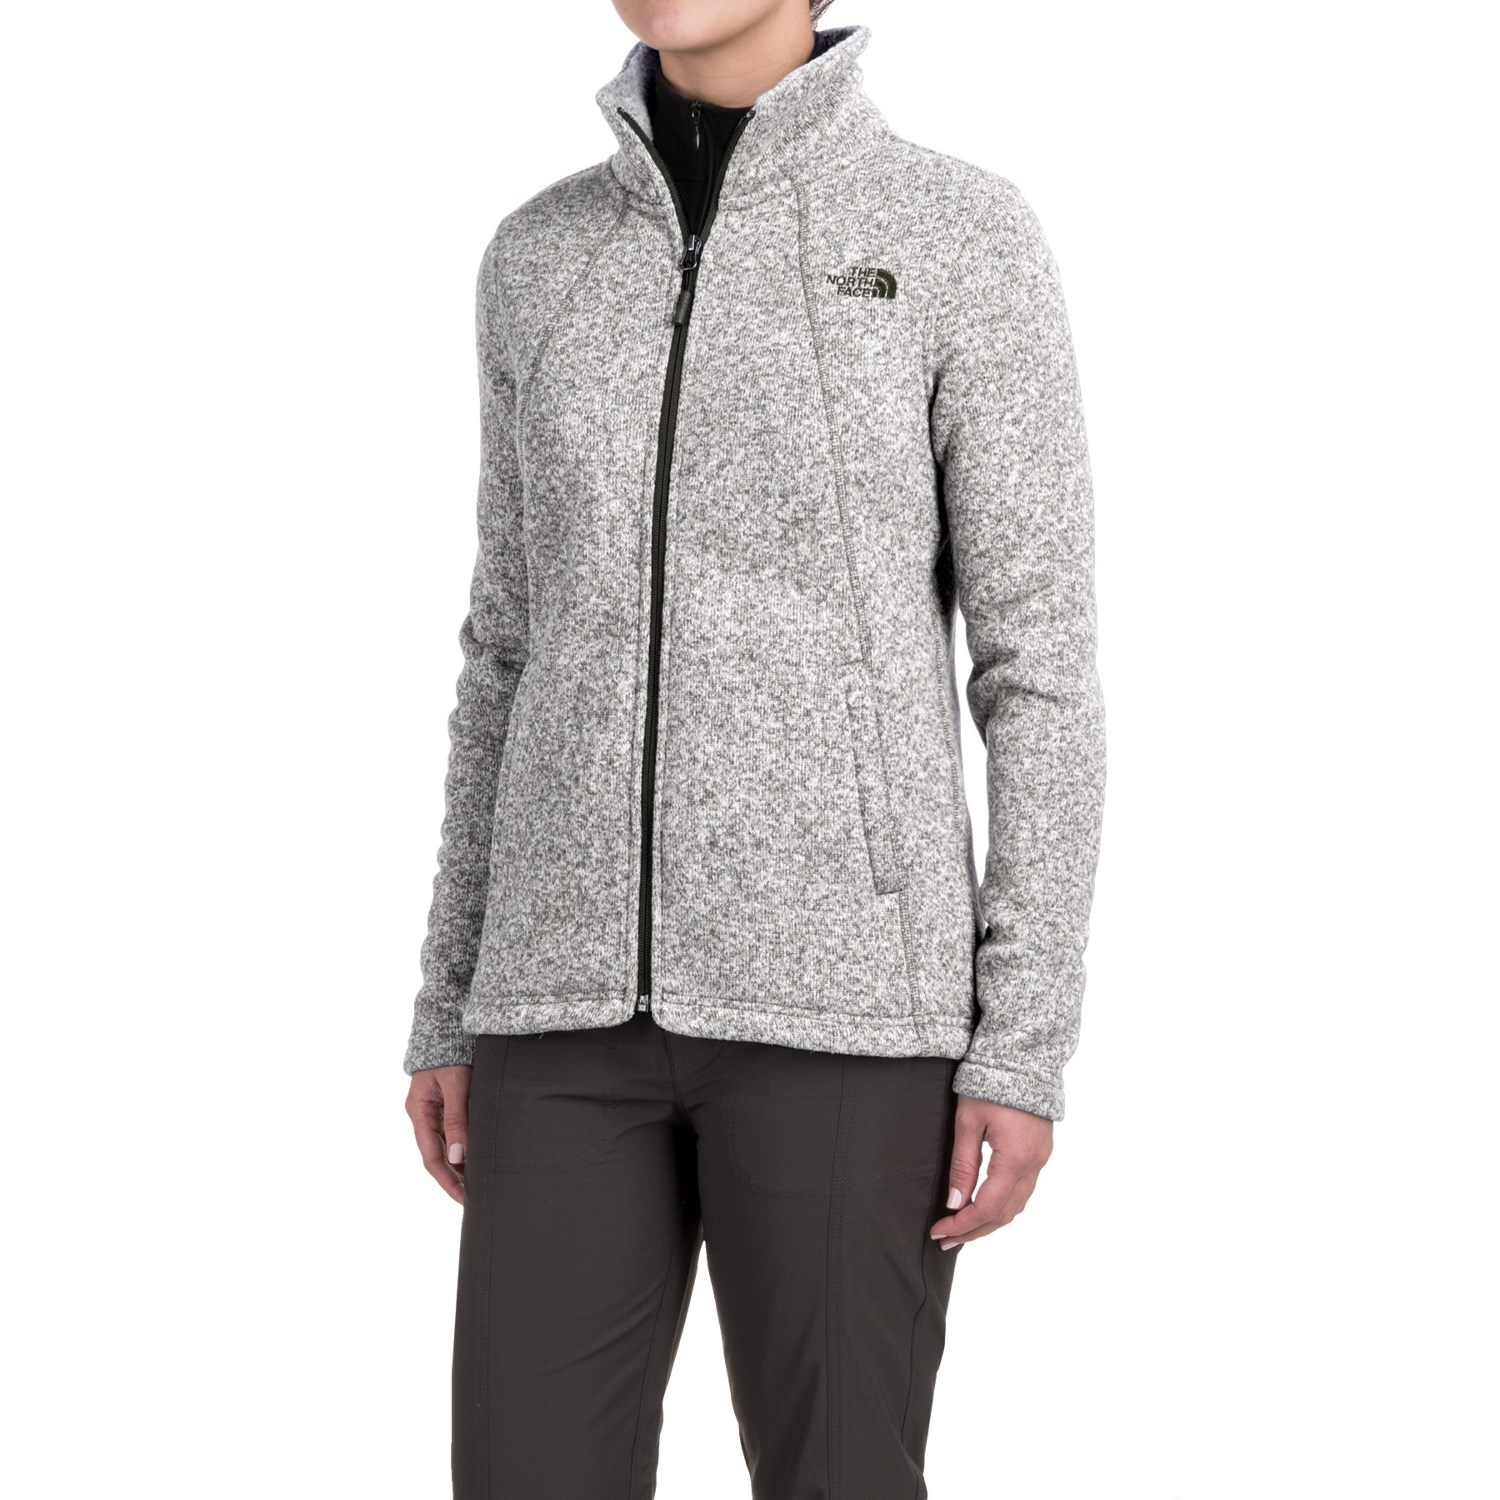 North Face Schoudertasje : The north face crescent knit jacket for women